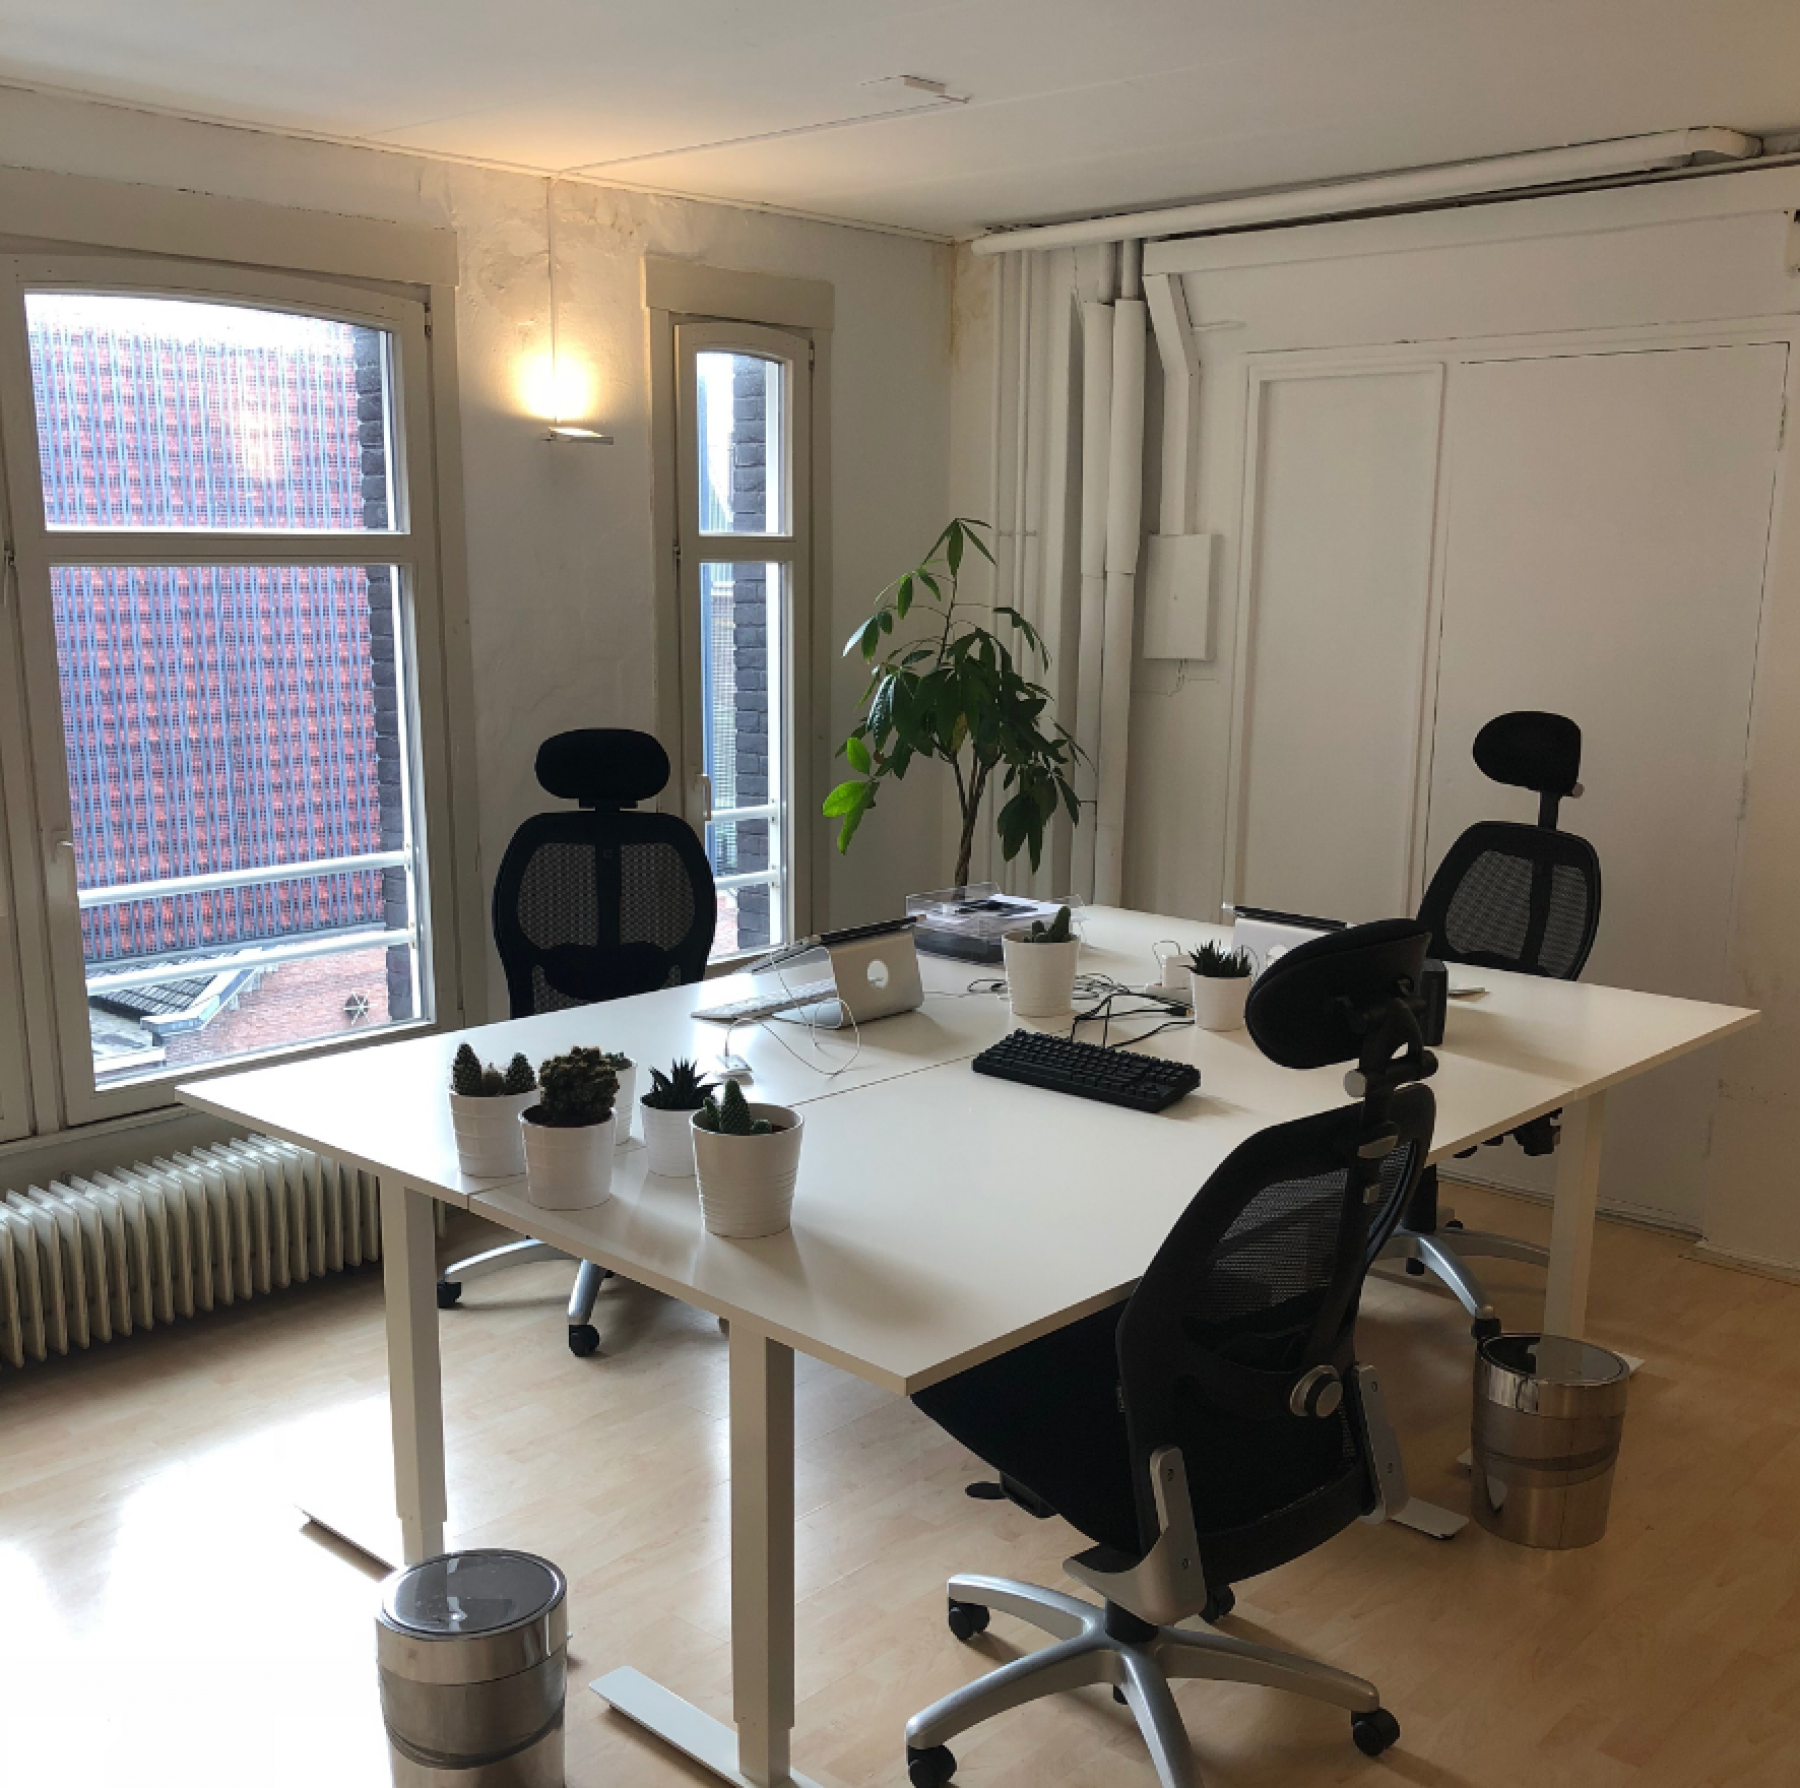 Working spaces in the office space